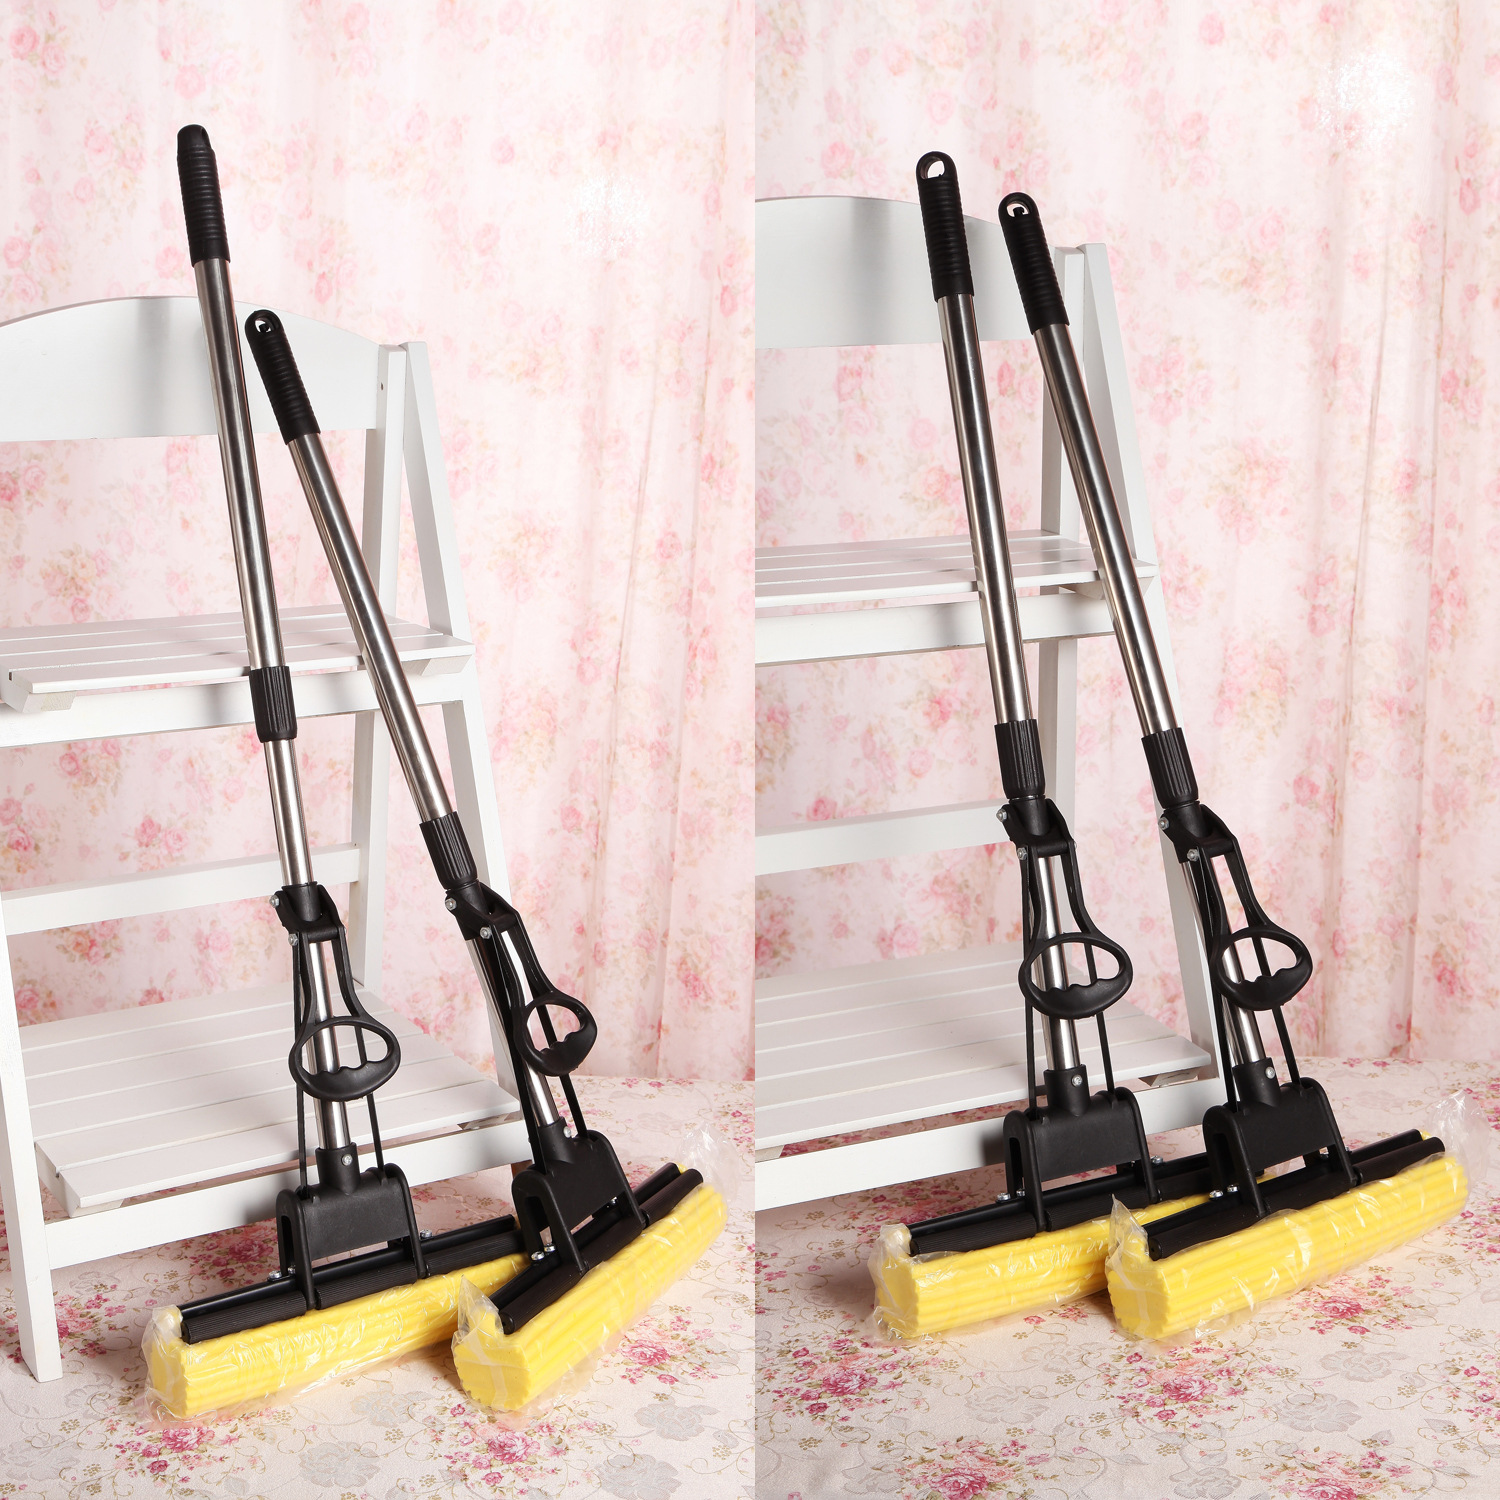 YoHere living home clean tools mop rollers squeeze mop water sponge mop stainless steel telescopic(China (Mainland))